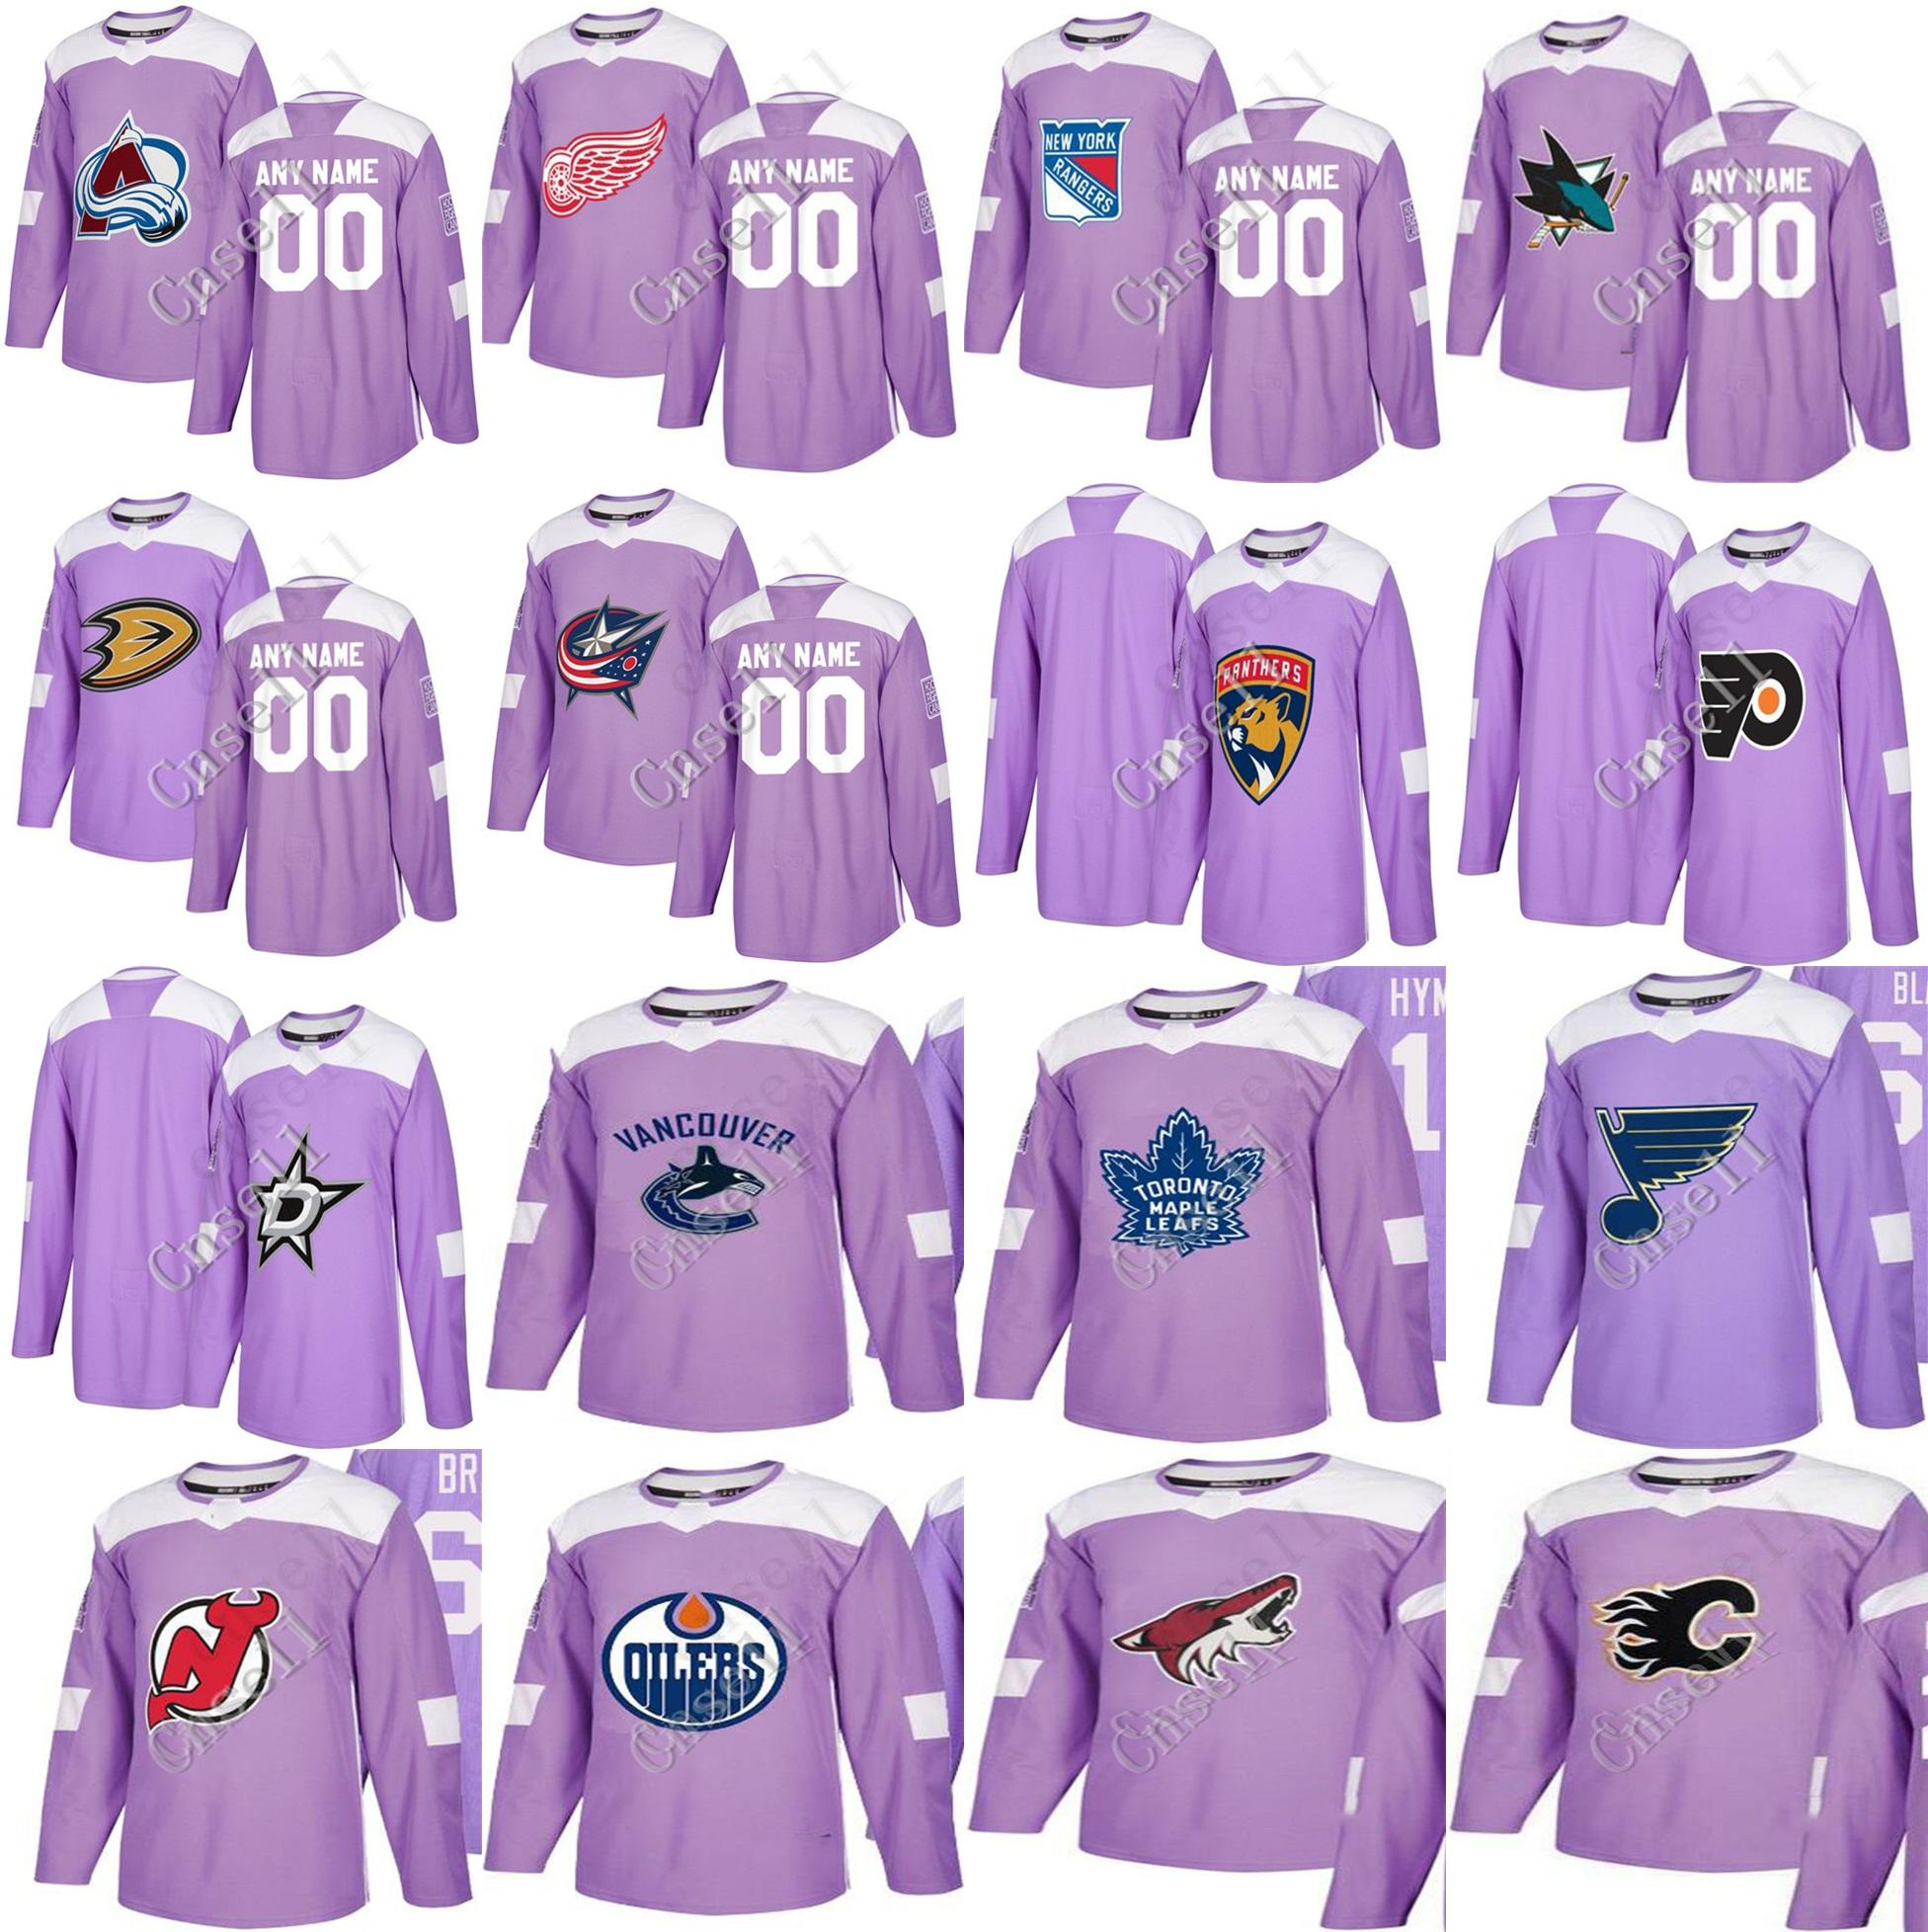 766346bce03 2019 2018 Purple Fights Cancer Practice Jersey Detroit Red Wings Colorado  Avalanche Anaheim Ducks Oilers Sharks Philadelphia Flyers Hockey Jersey  From ...